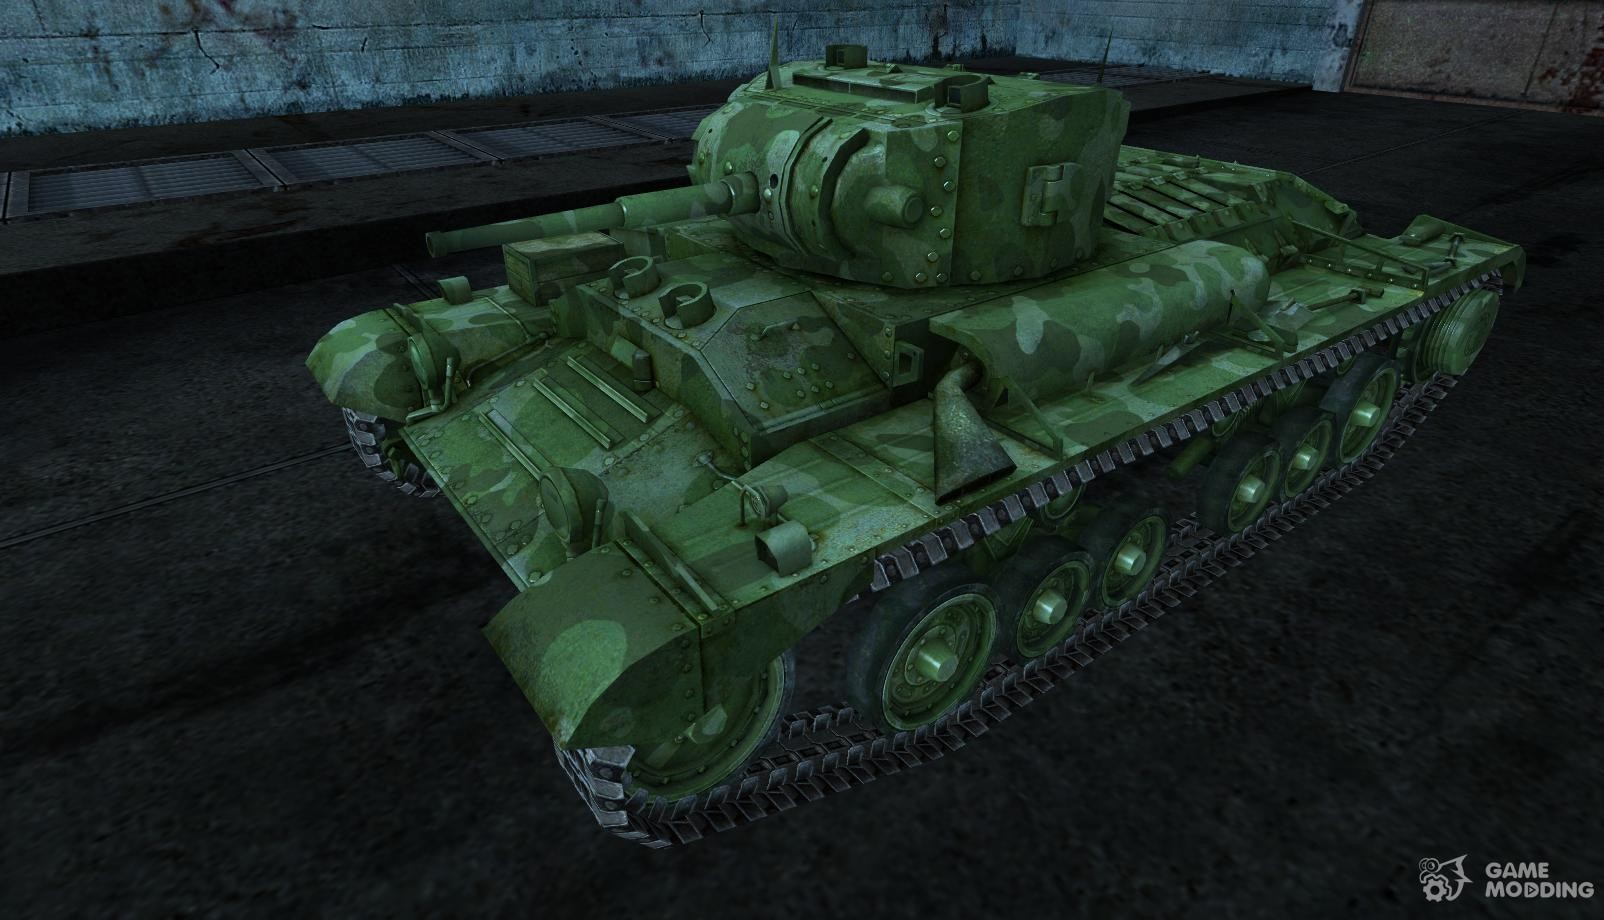 world of tanks valentine 2 matchmaking Tankopedia will introduce you to the vehicles you'll encounter in-game and help you study their characteristics search for vehicles using special filters or explore our custom-made vehicle collections.